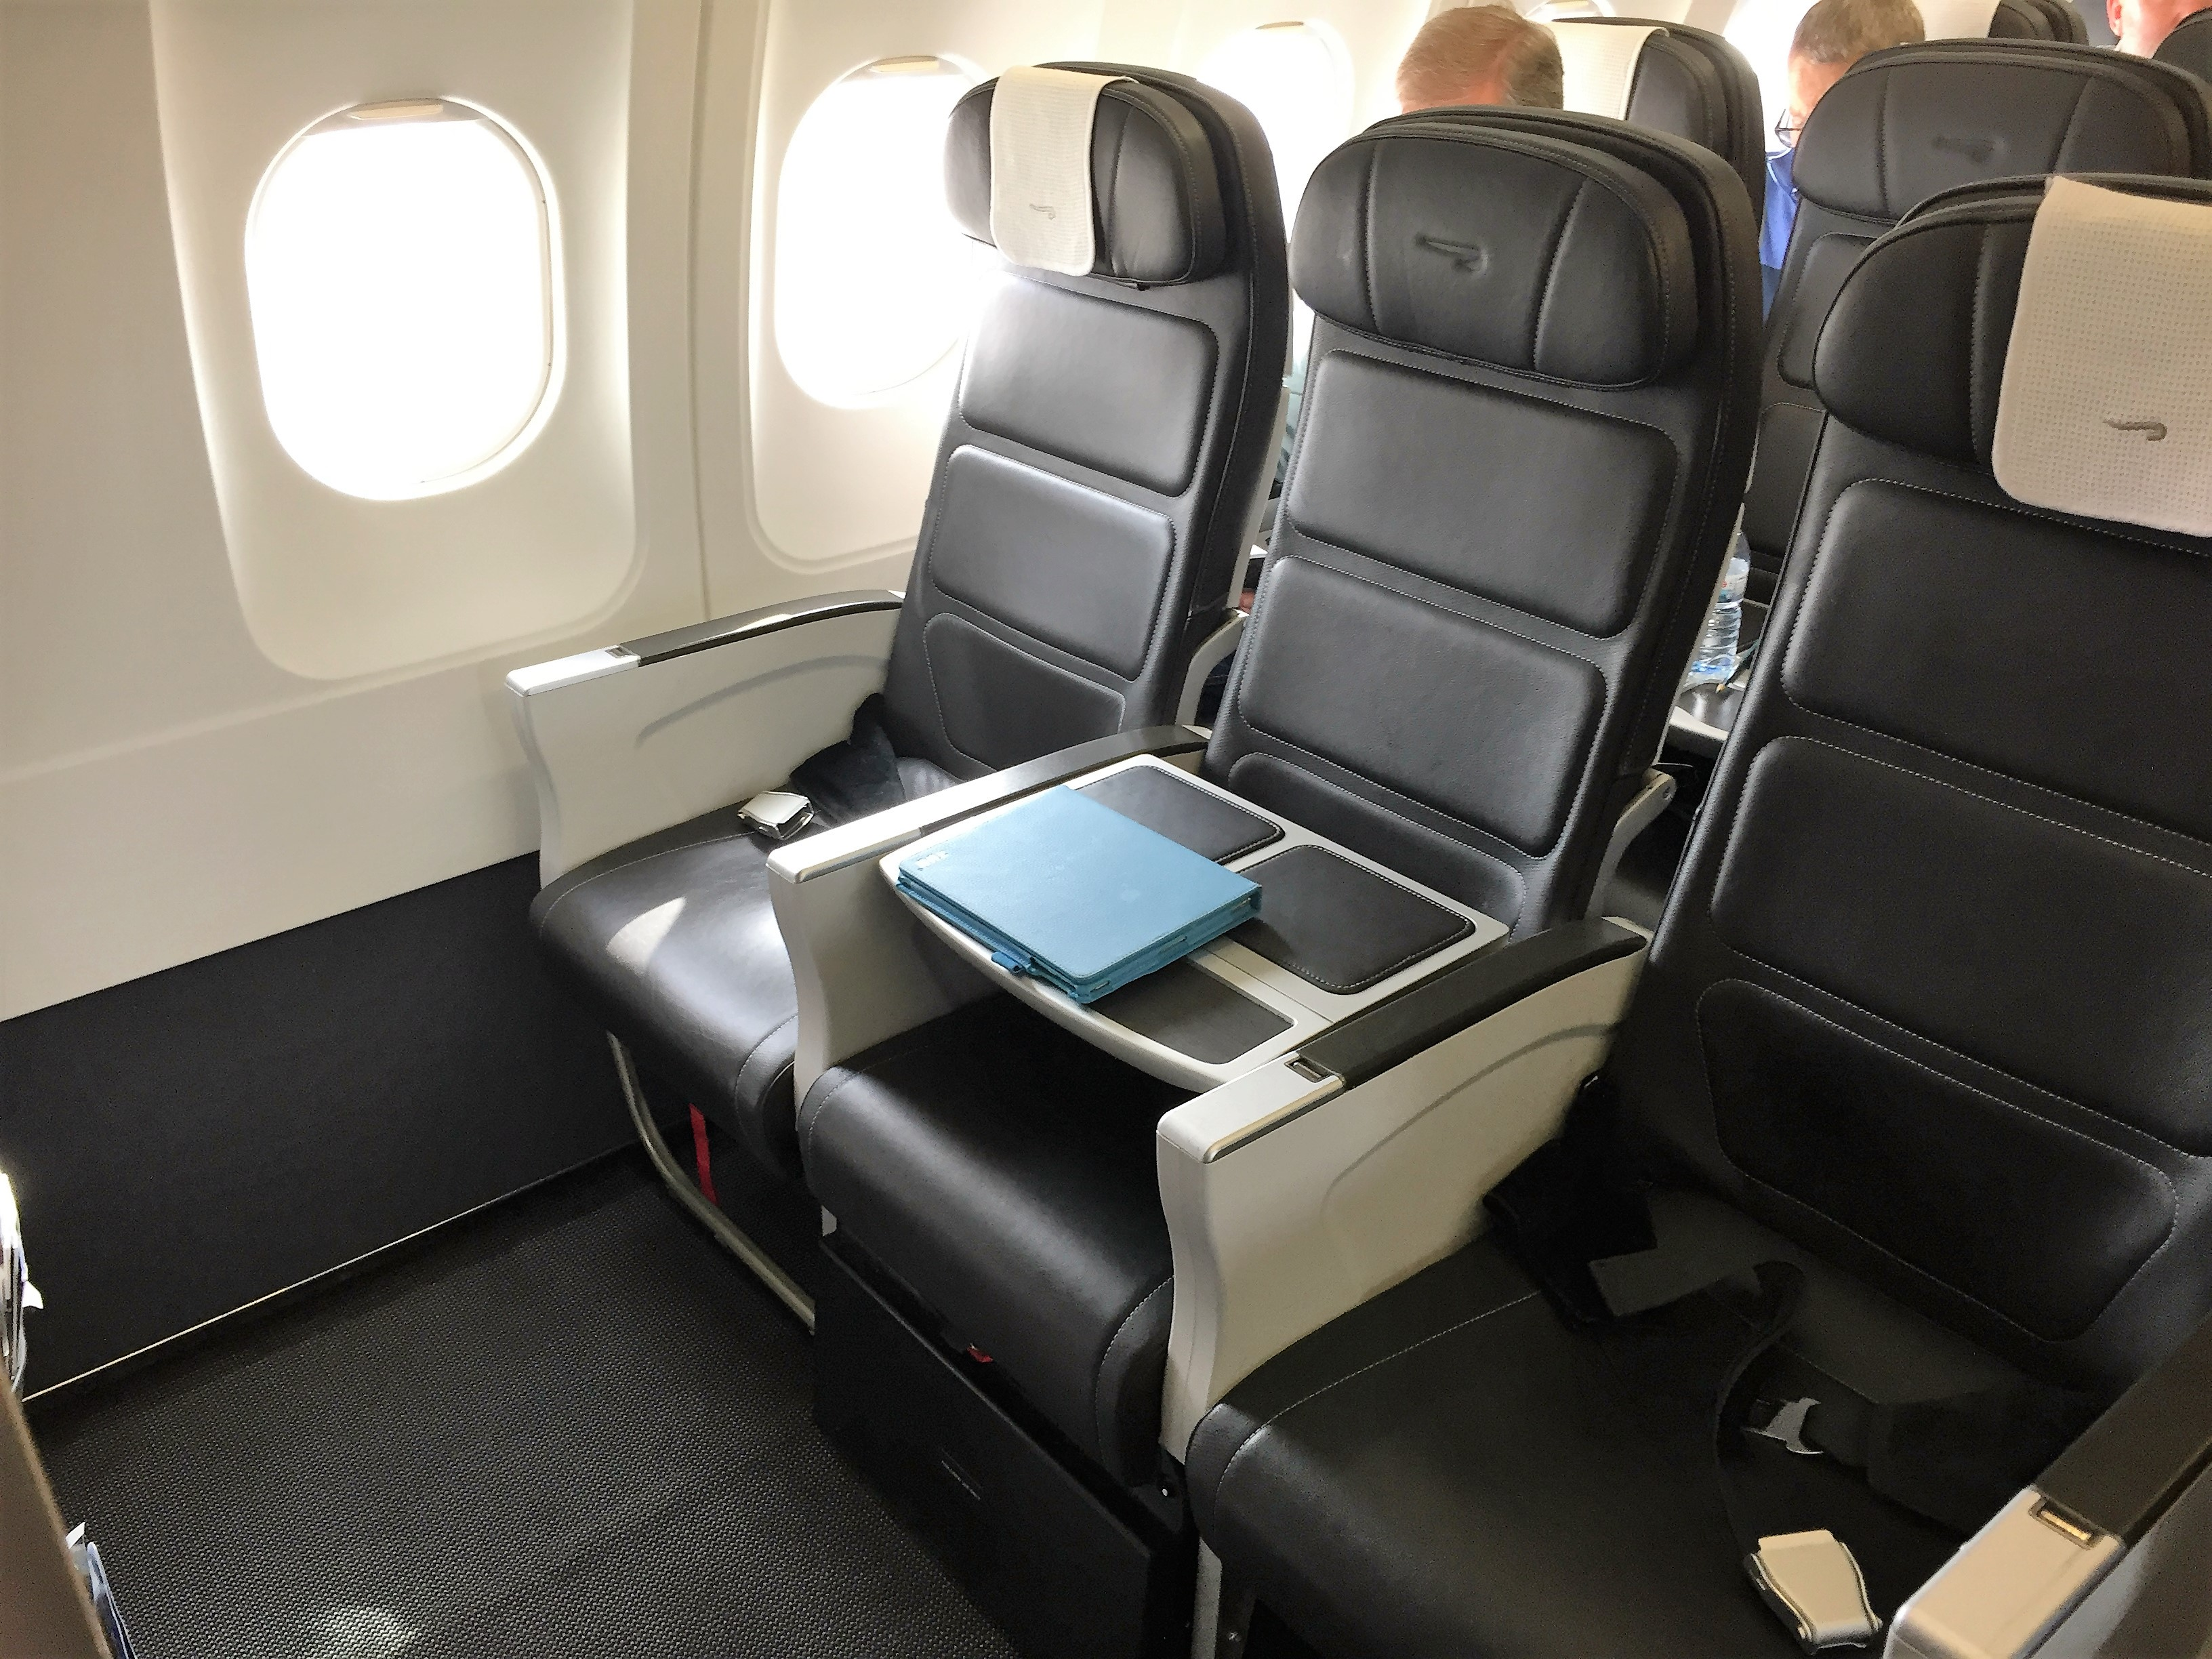 BA Club Europe Improvements Plus Domestic Club Europe On Sale For Cash And Avios - Turning Left ...